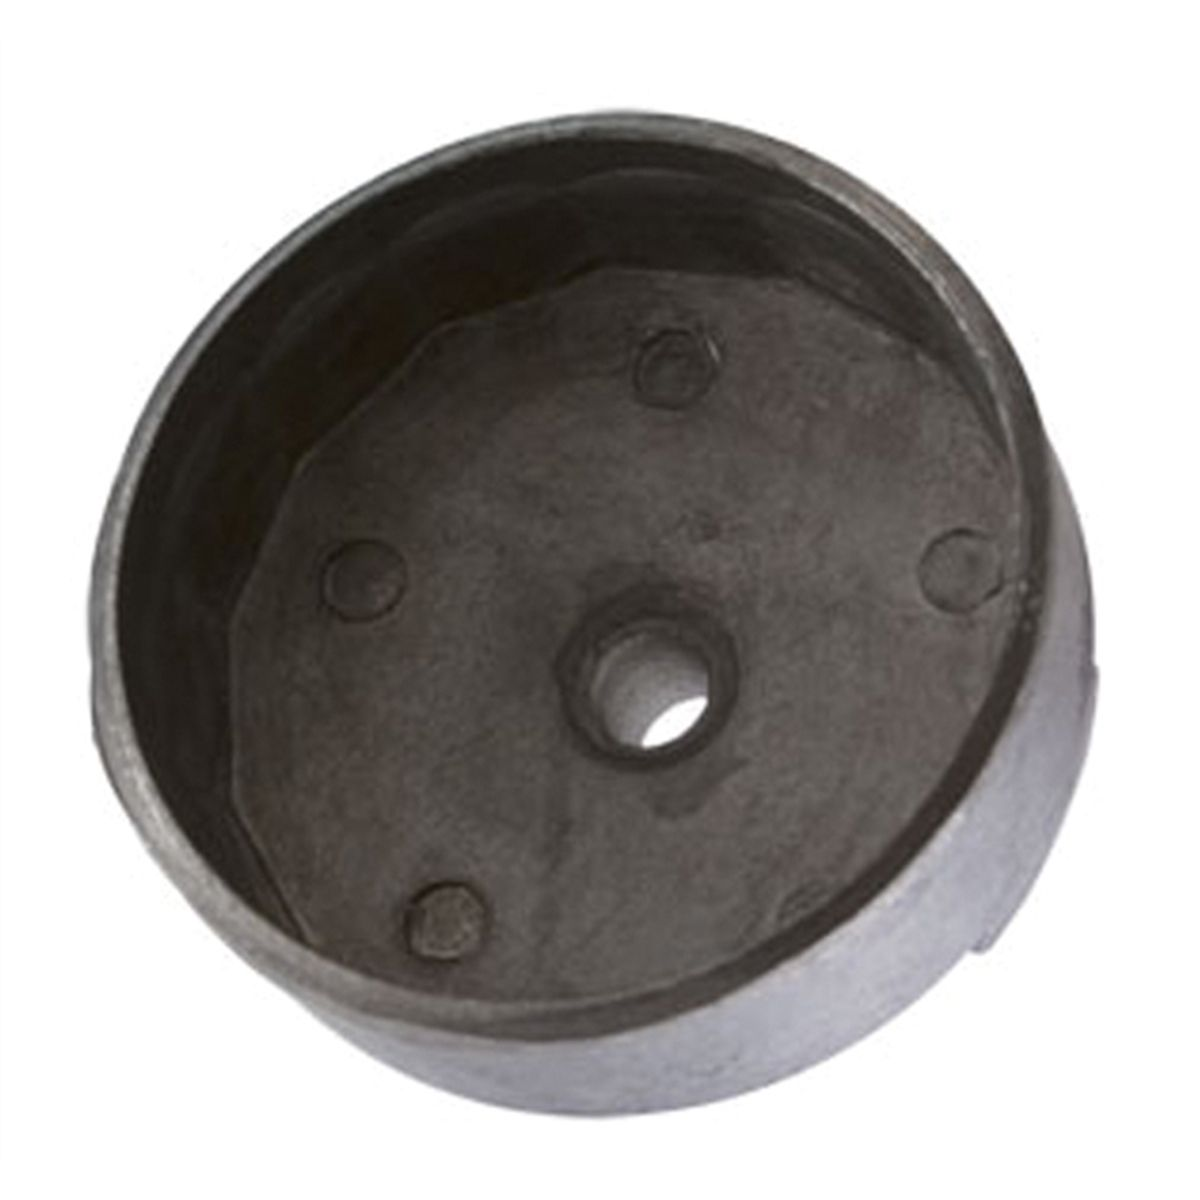 hight resolution of ast 09228 06501 toyota lexus scion oil filter wrench 64mm